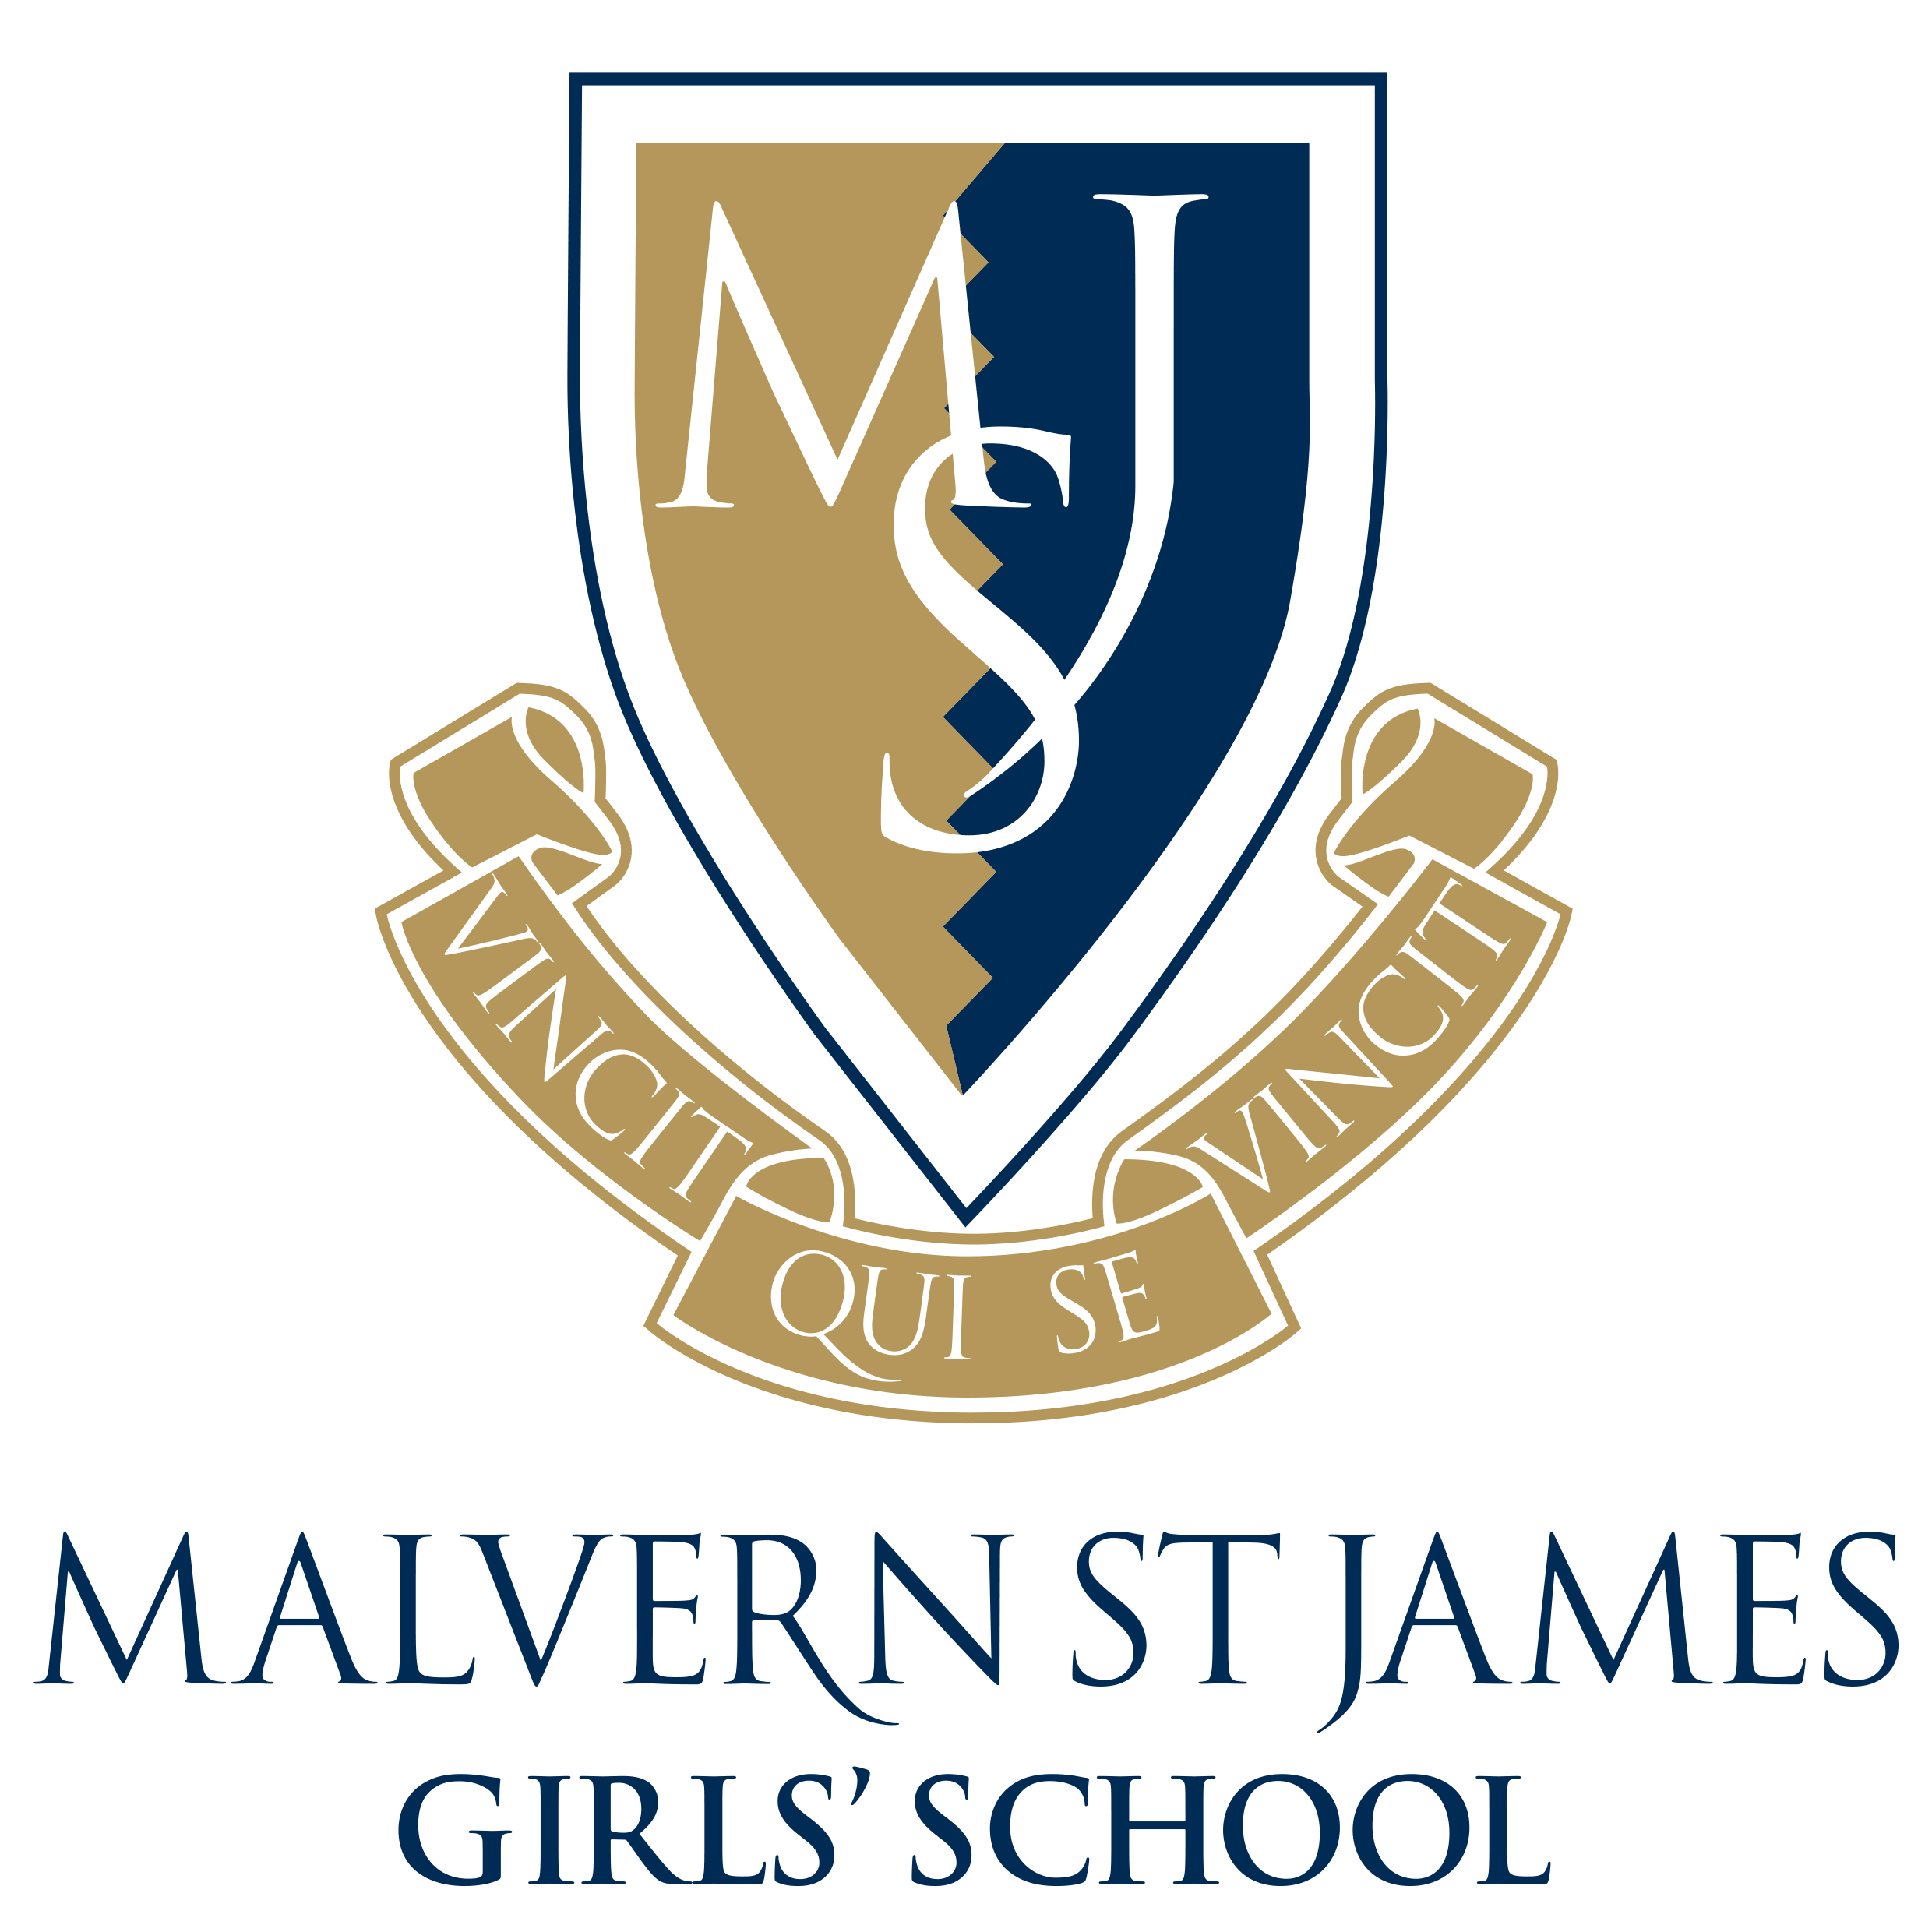 Malvern St James Girls' School